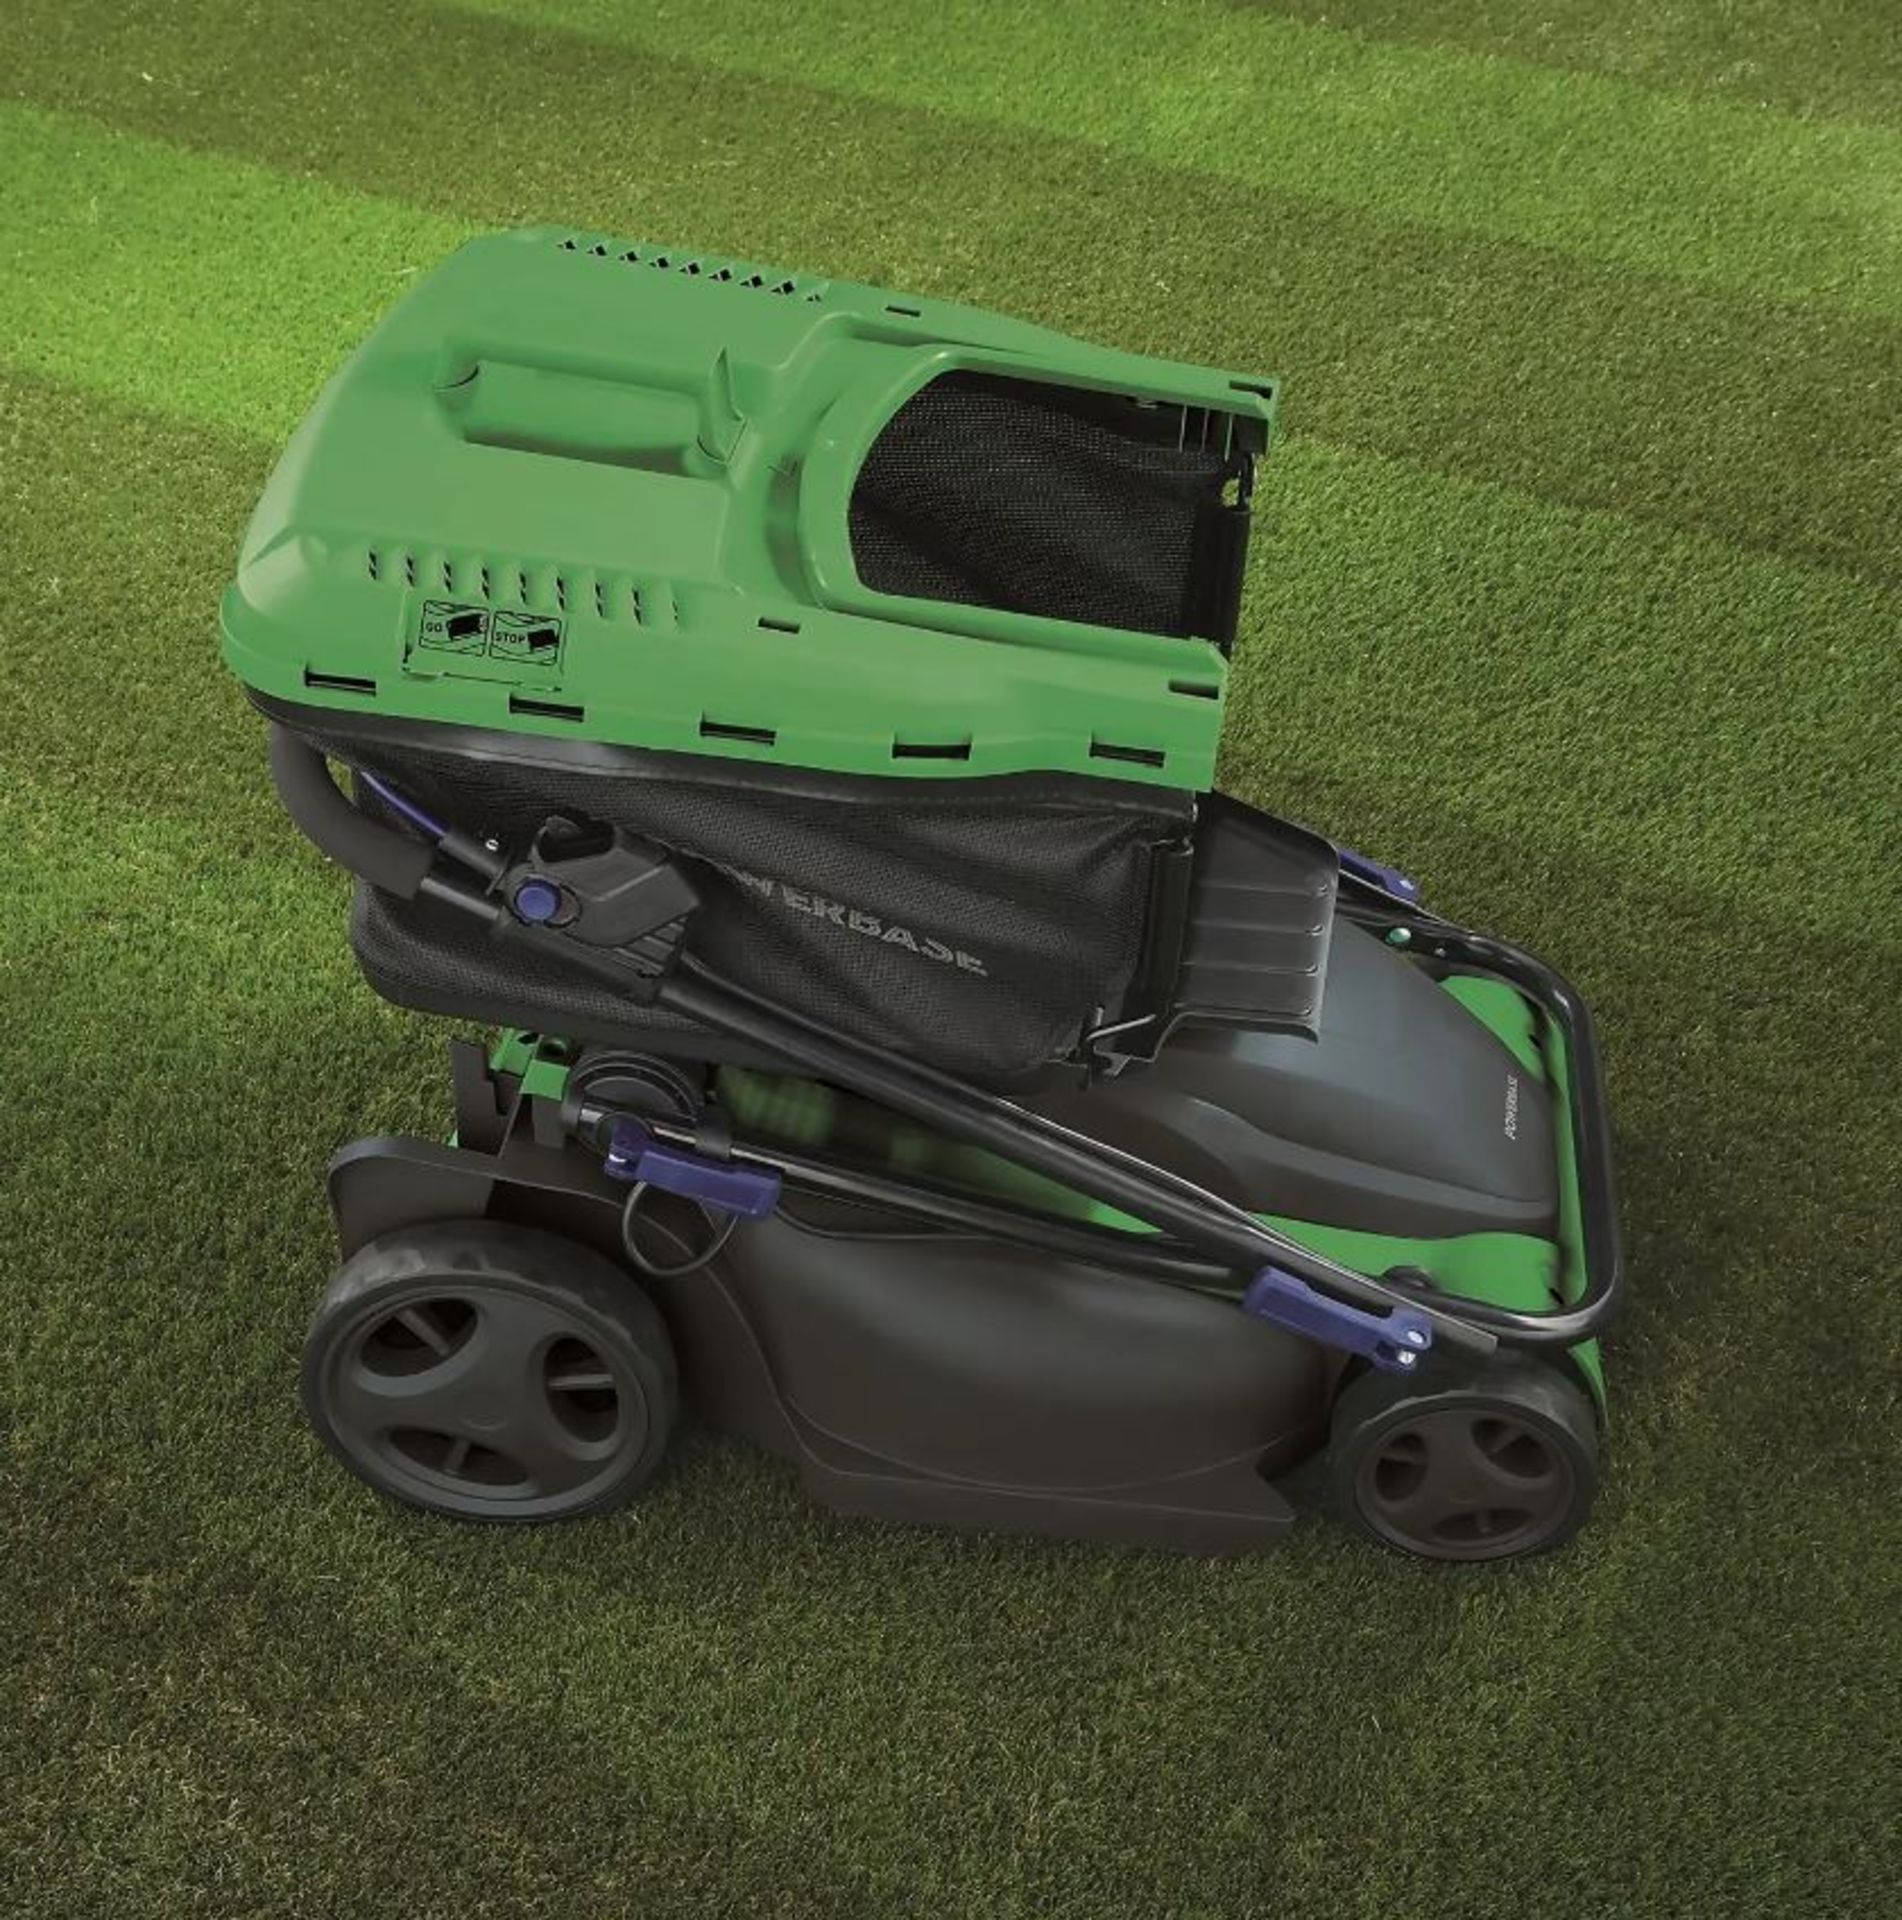 (P2) 2x Powerbase 41cm 1800W Electric Rotary Lawn Mower. RRP £119.00. - Image 2 of 3